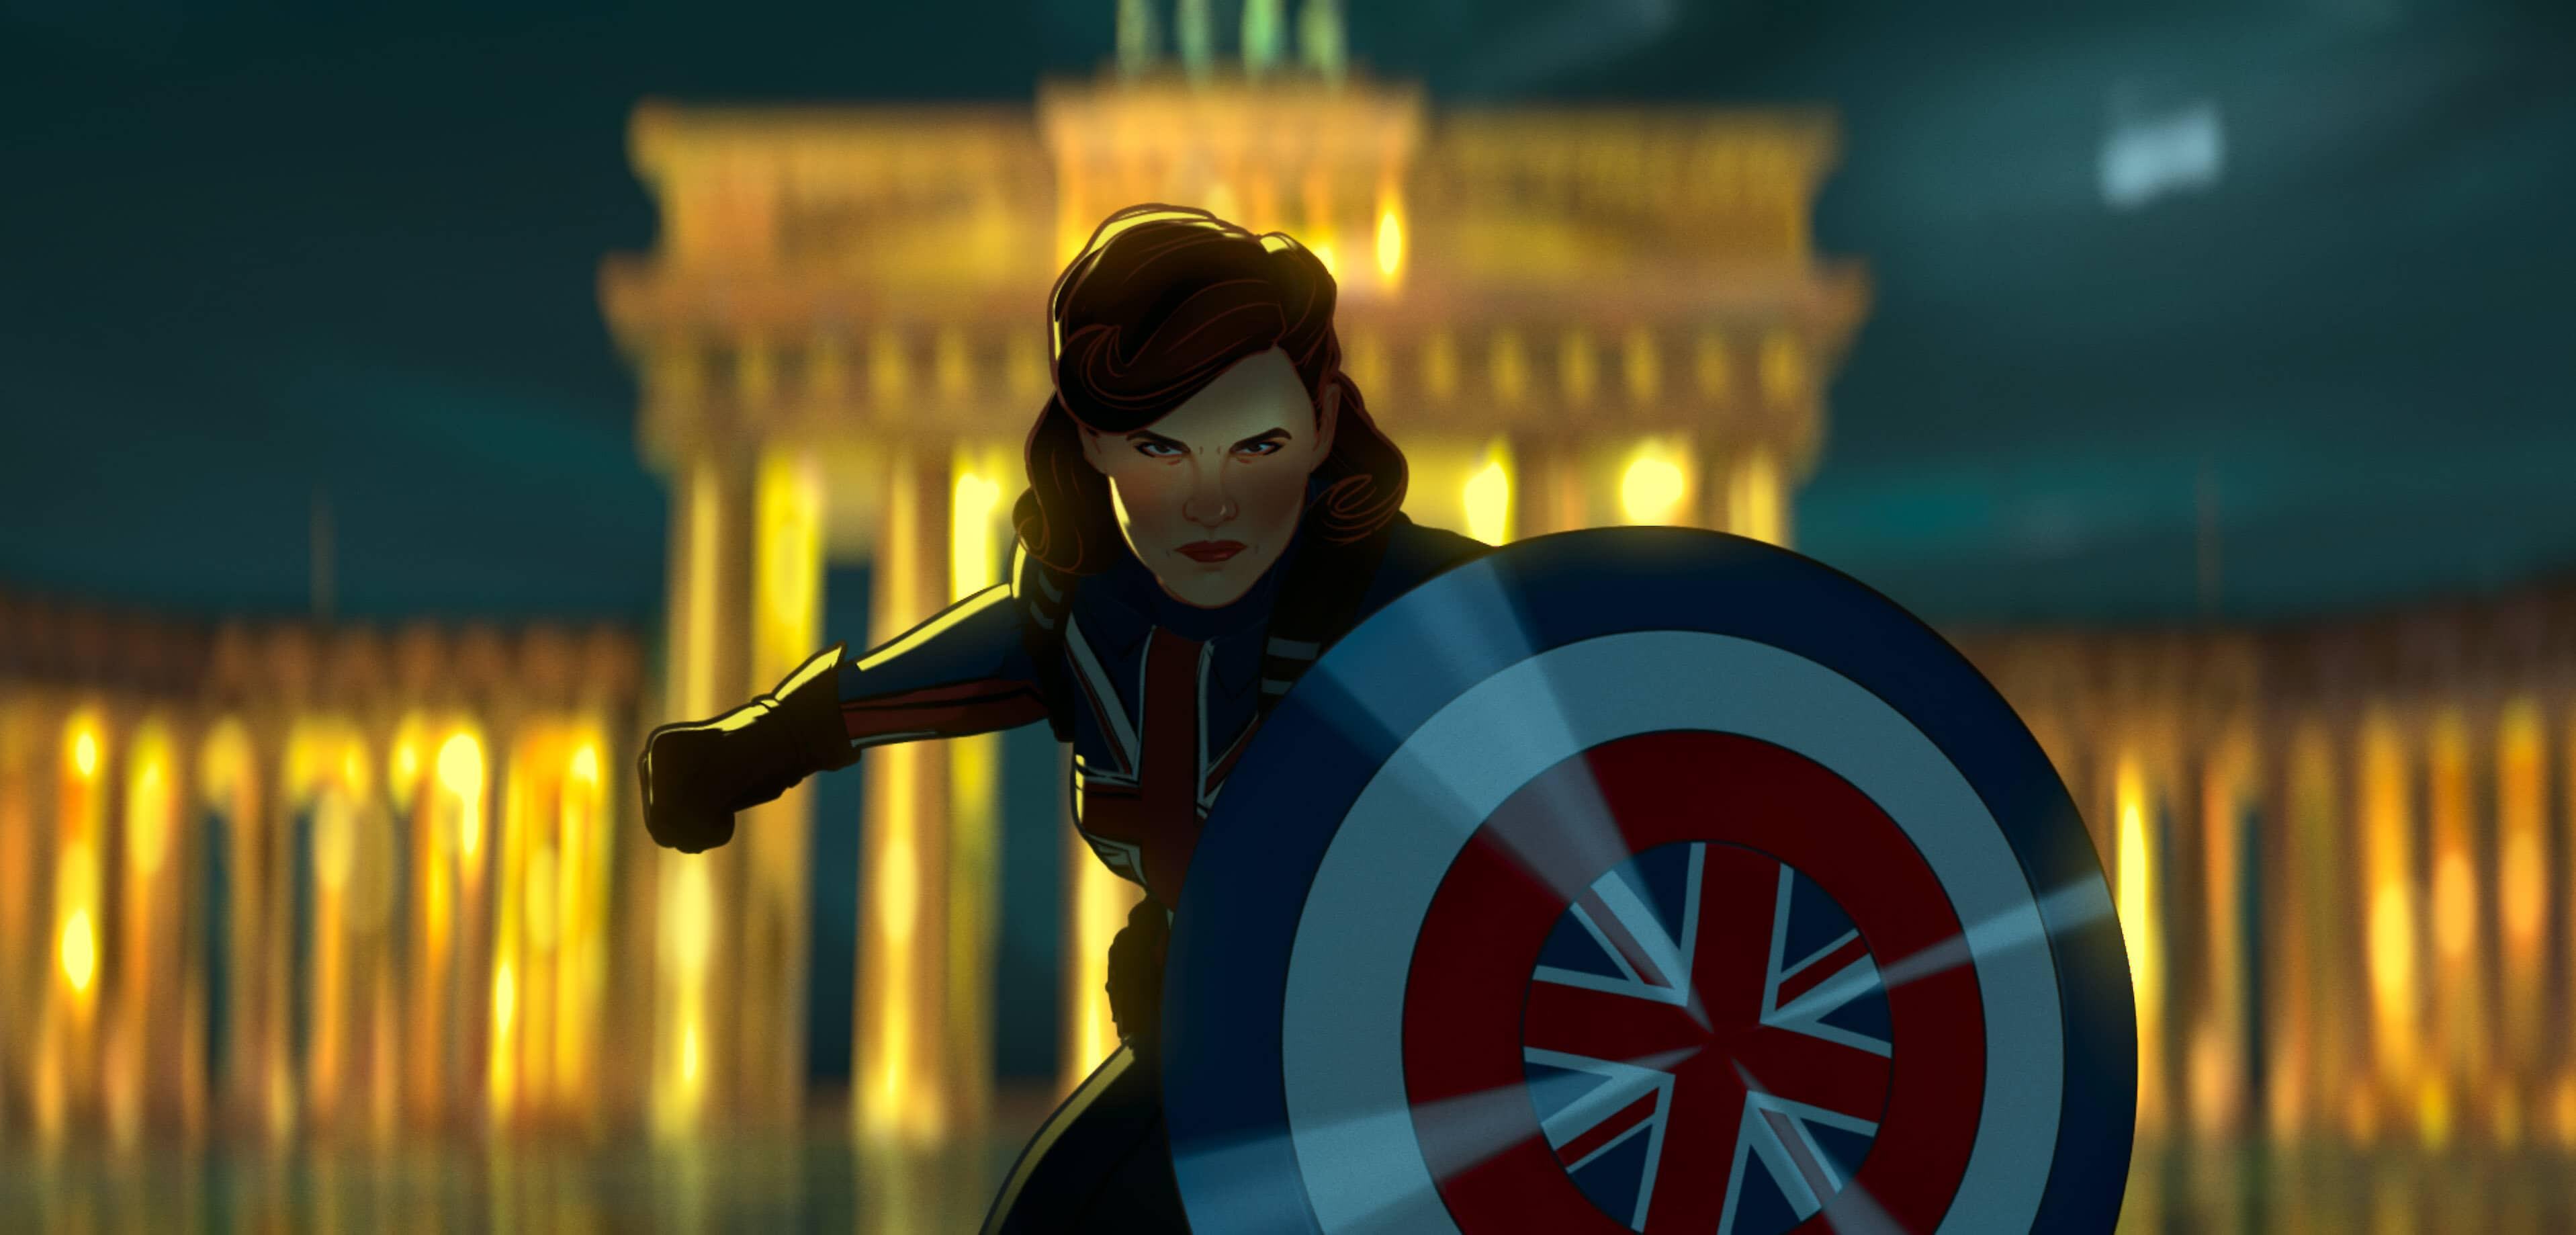 A still from Marvel's What If...? of Peggy Carter as Captain Britain with her shield